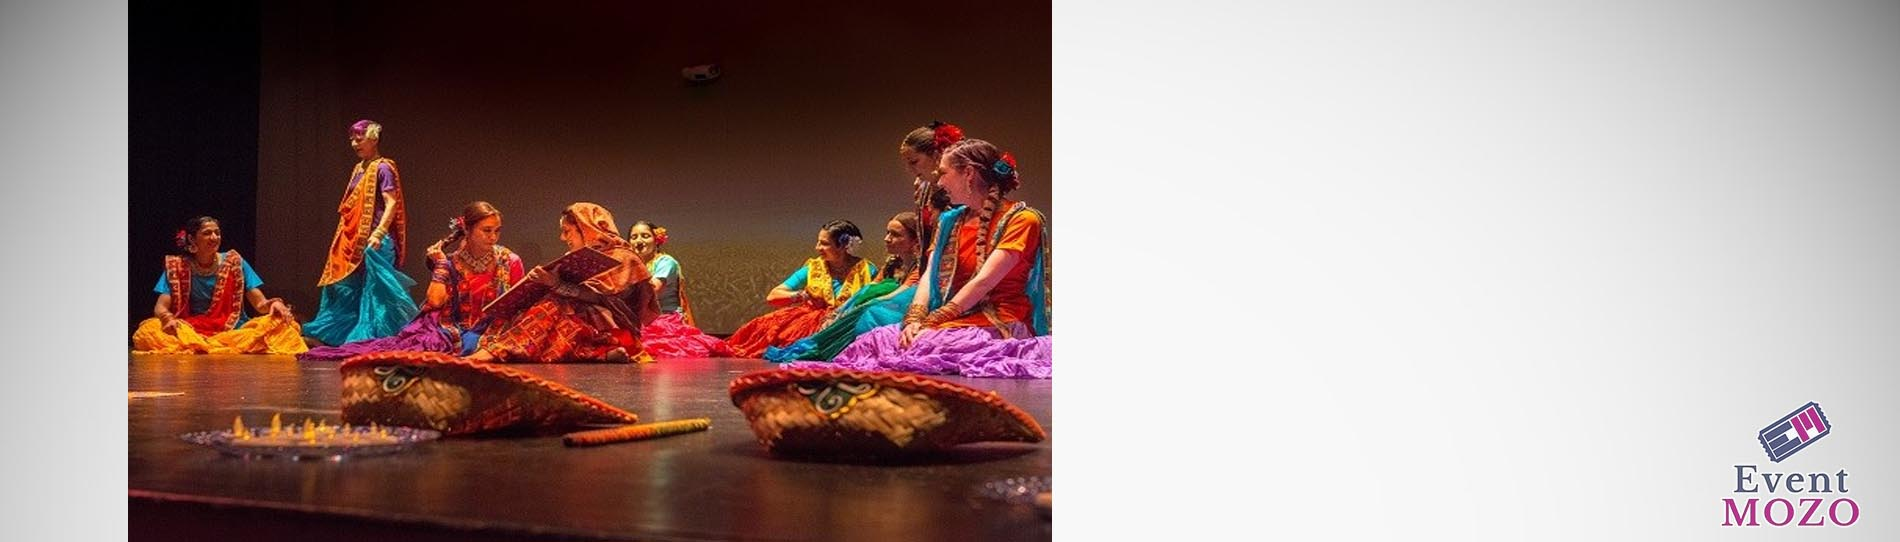 EventMozo Colors Of India Dance Production with Dholrhythms Dance Company